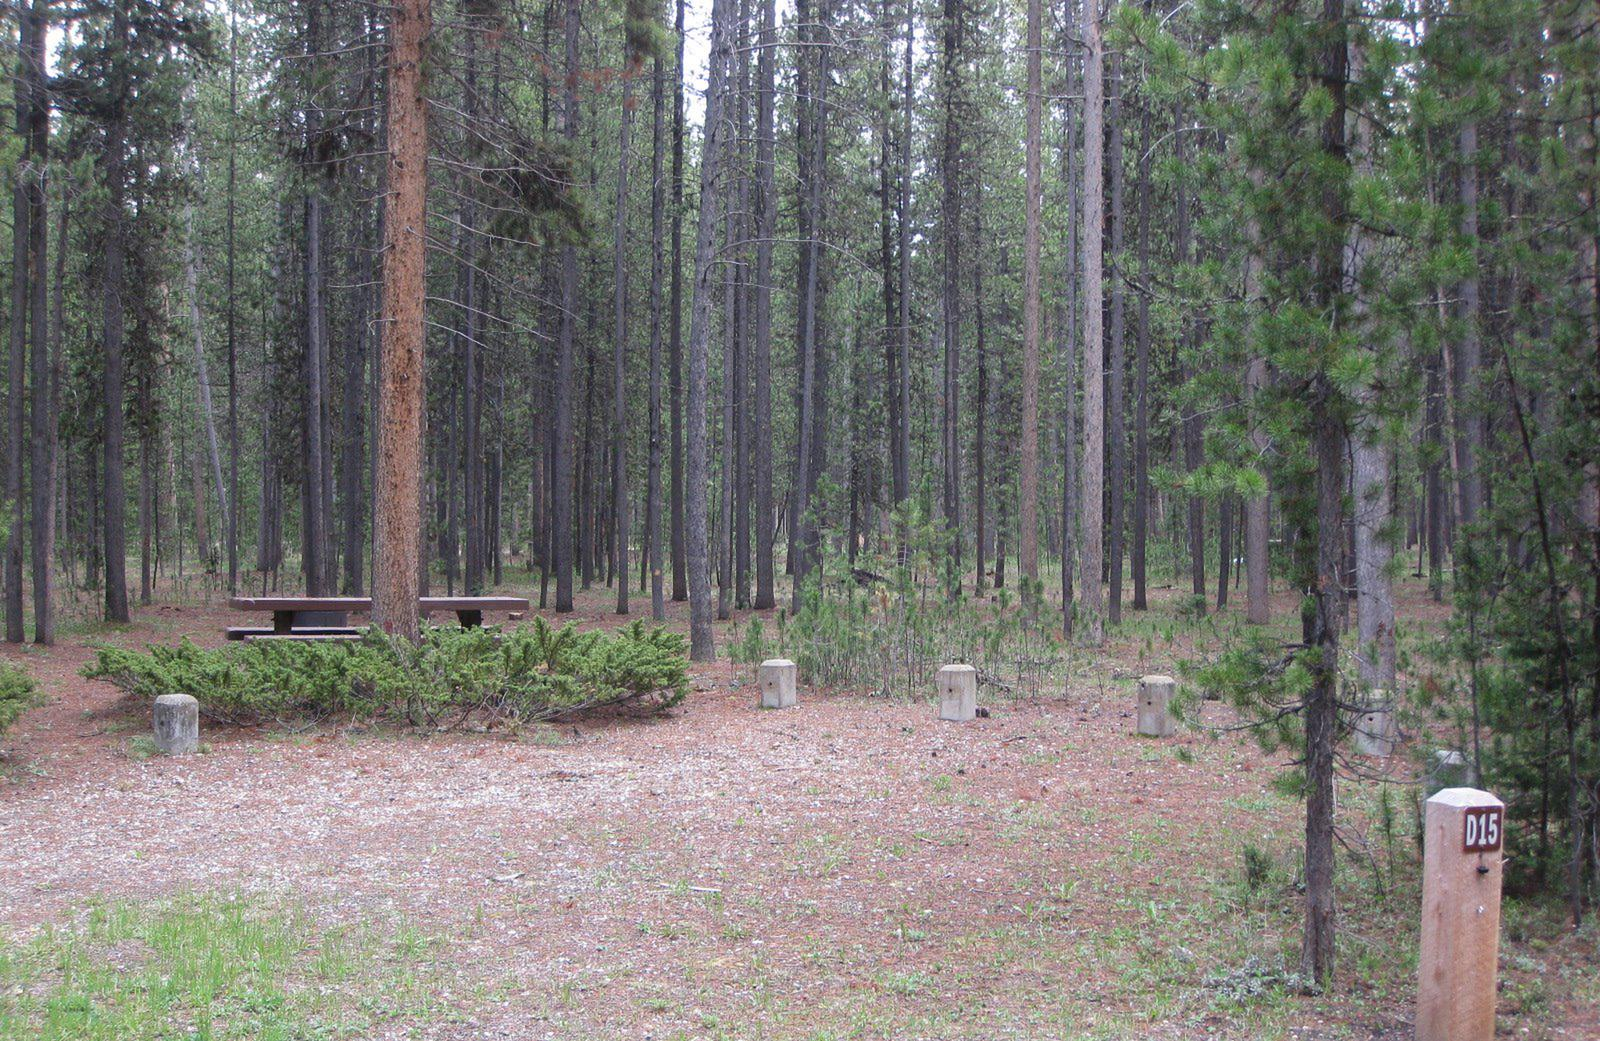 Site D15, surrounded by pine trees, picnic table & fire ringSite D15